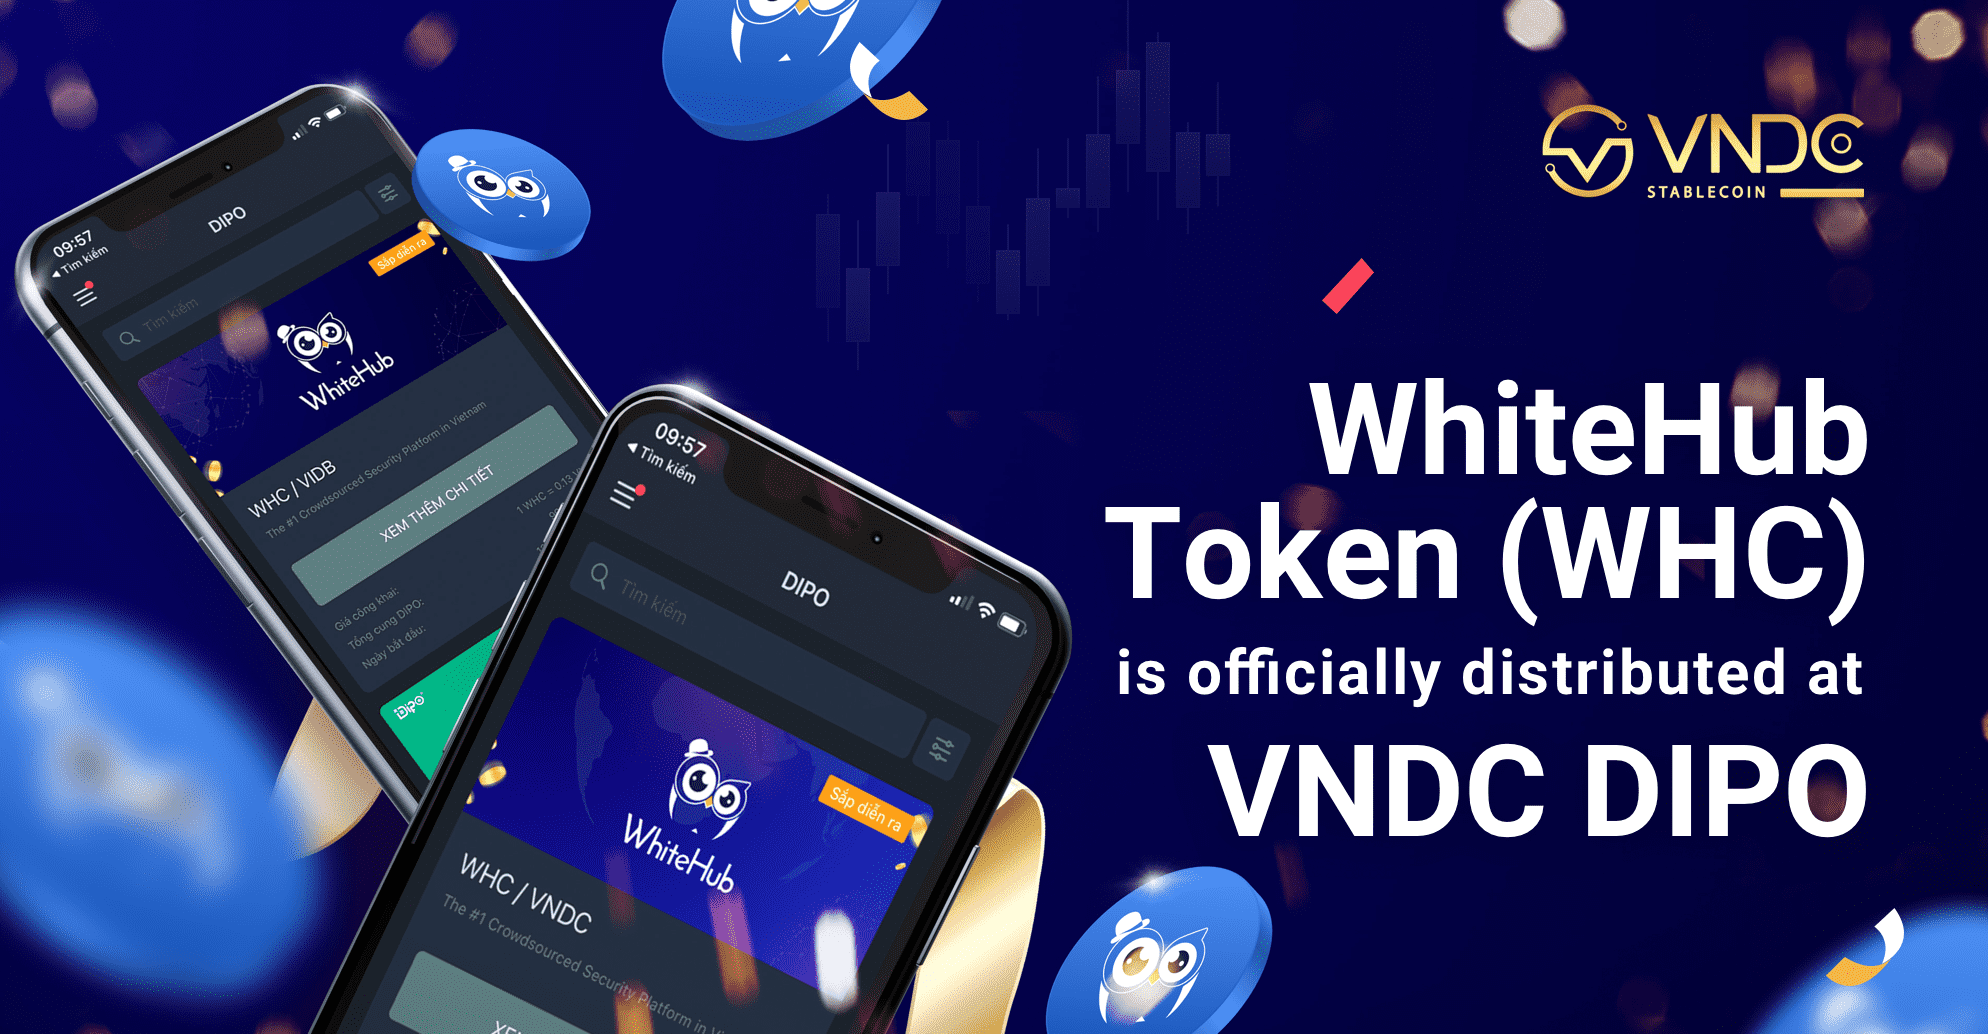 WhiteHub Token (WHC) is officially distributed at VNDC DIPO